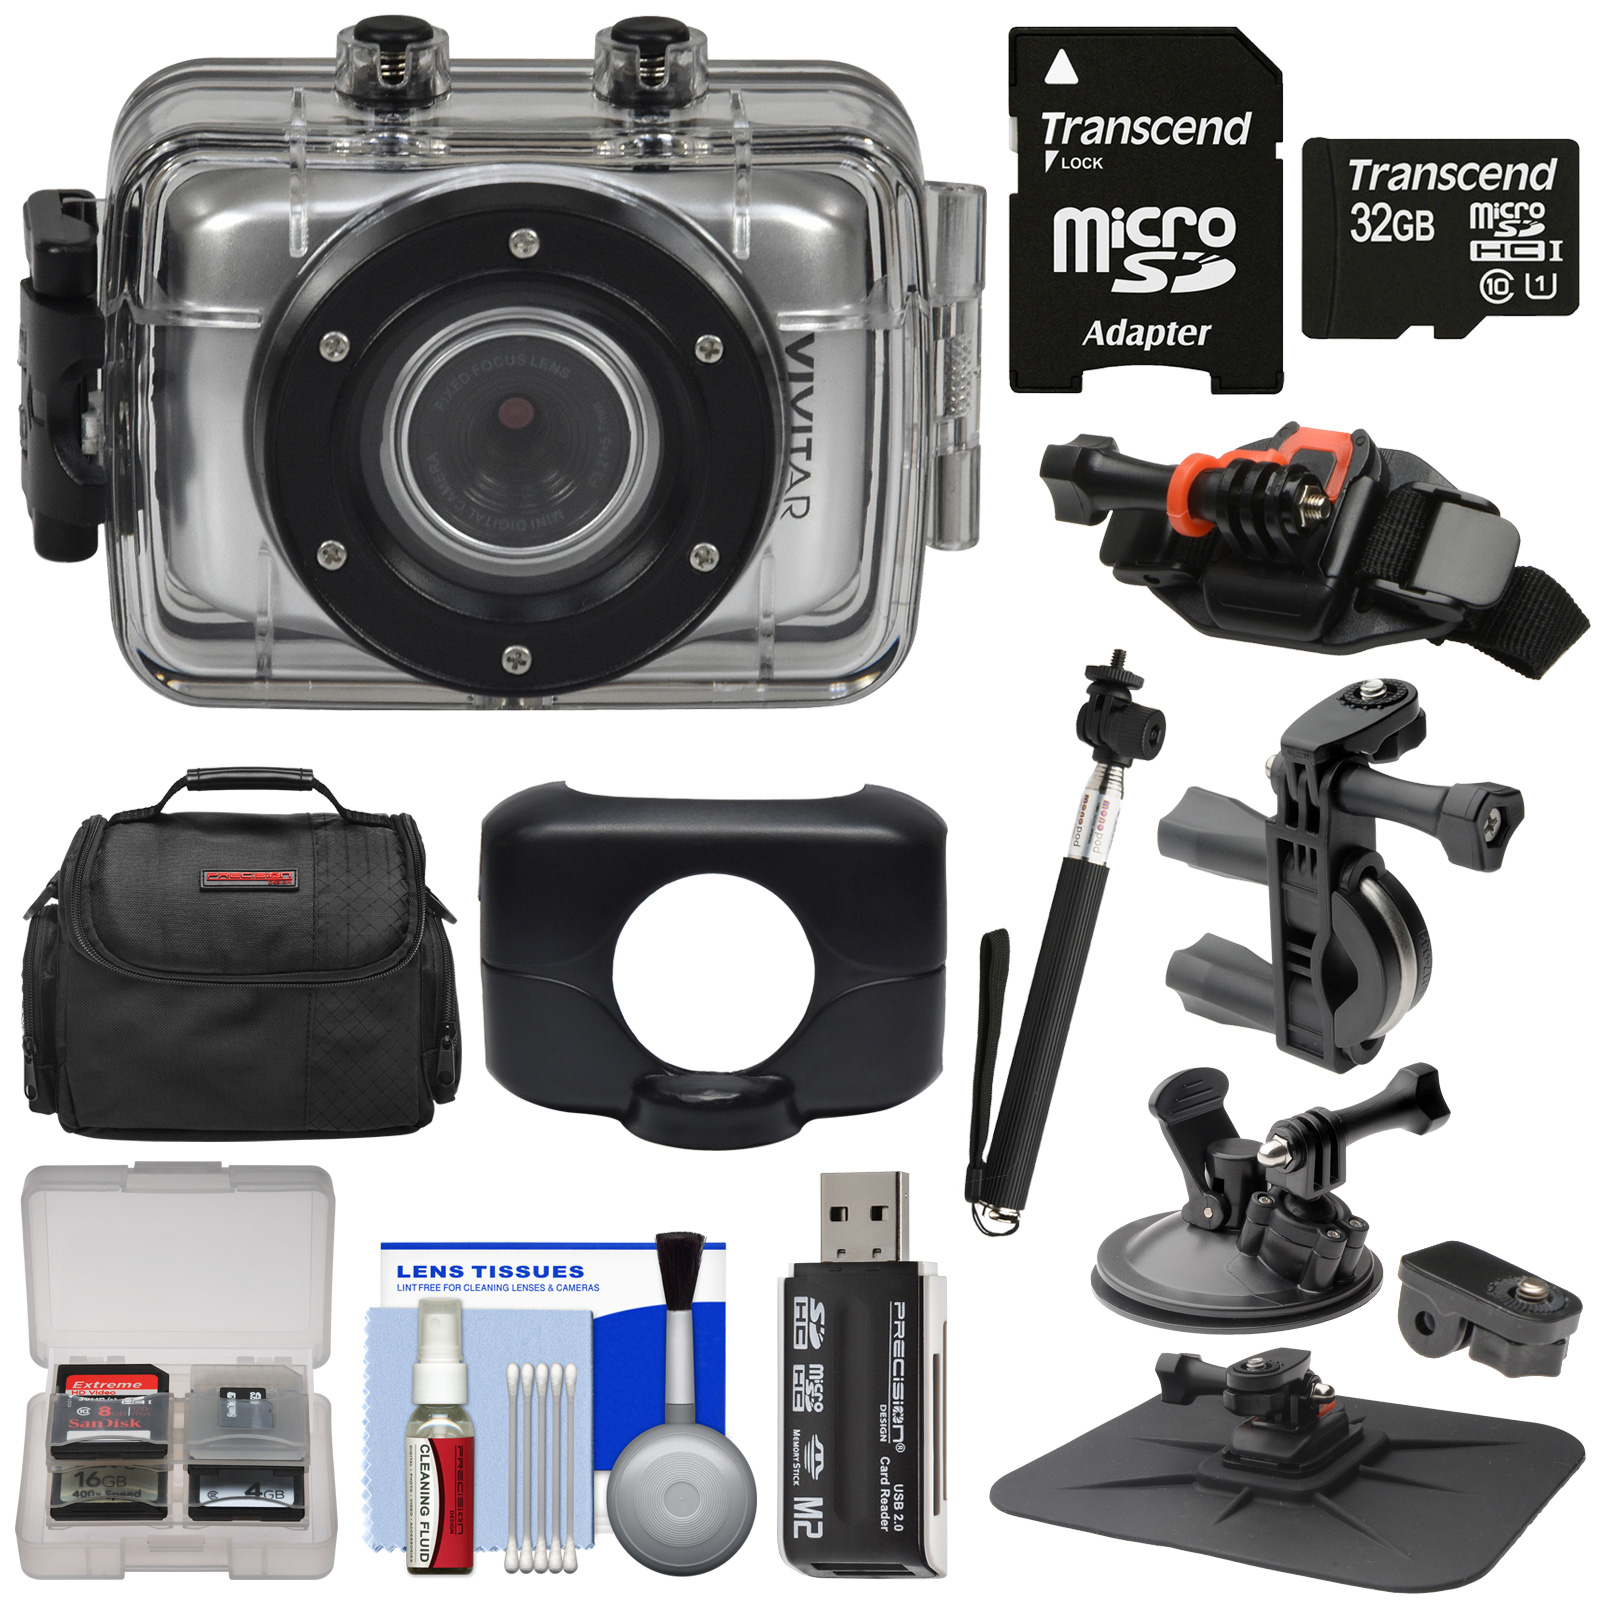 Vivitar DVR781HD HD Waterproof Action Video Camera Camcorder (Silver) + 32GB Card + Suction Cup, Helmet, Bike & Dashboard Mounts + Case + Selfie Stick Kit